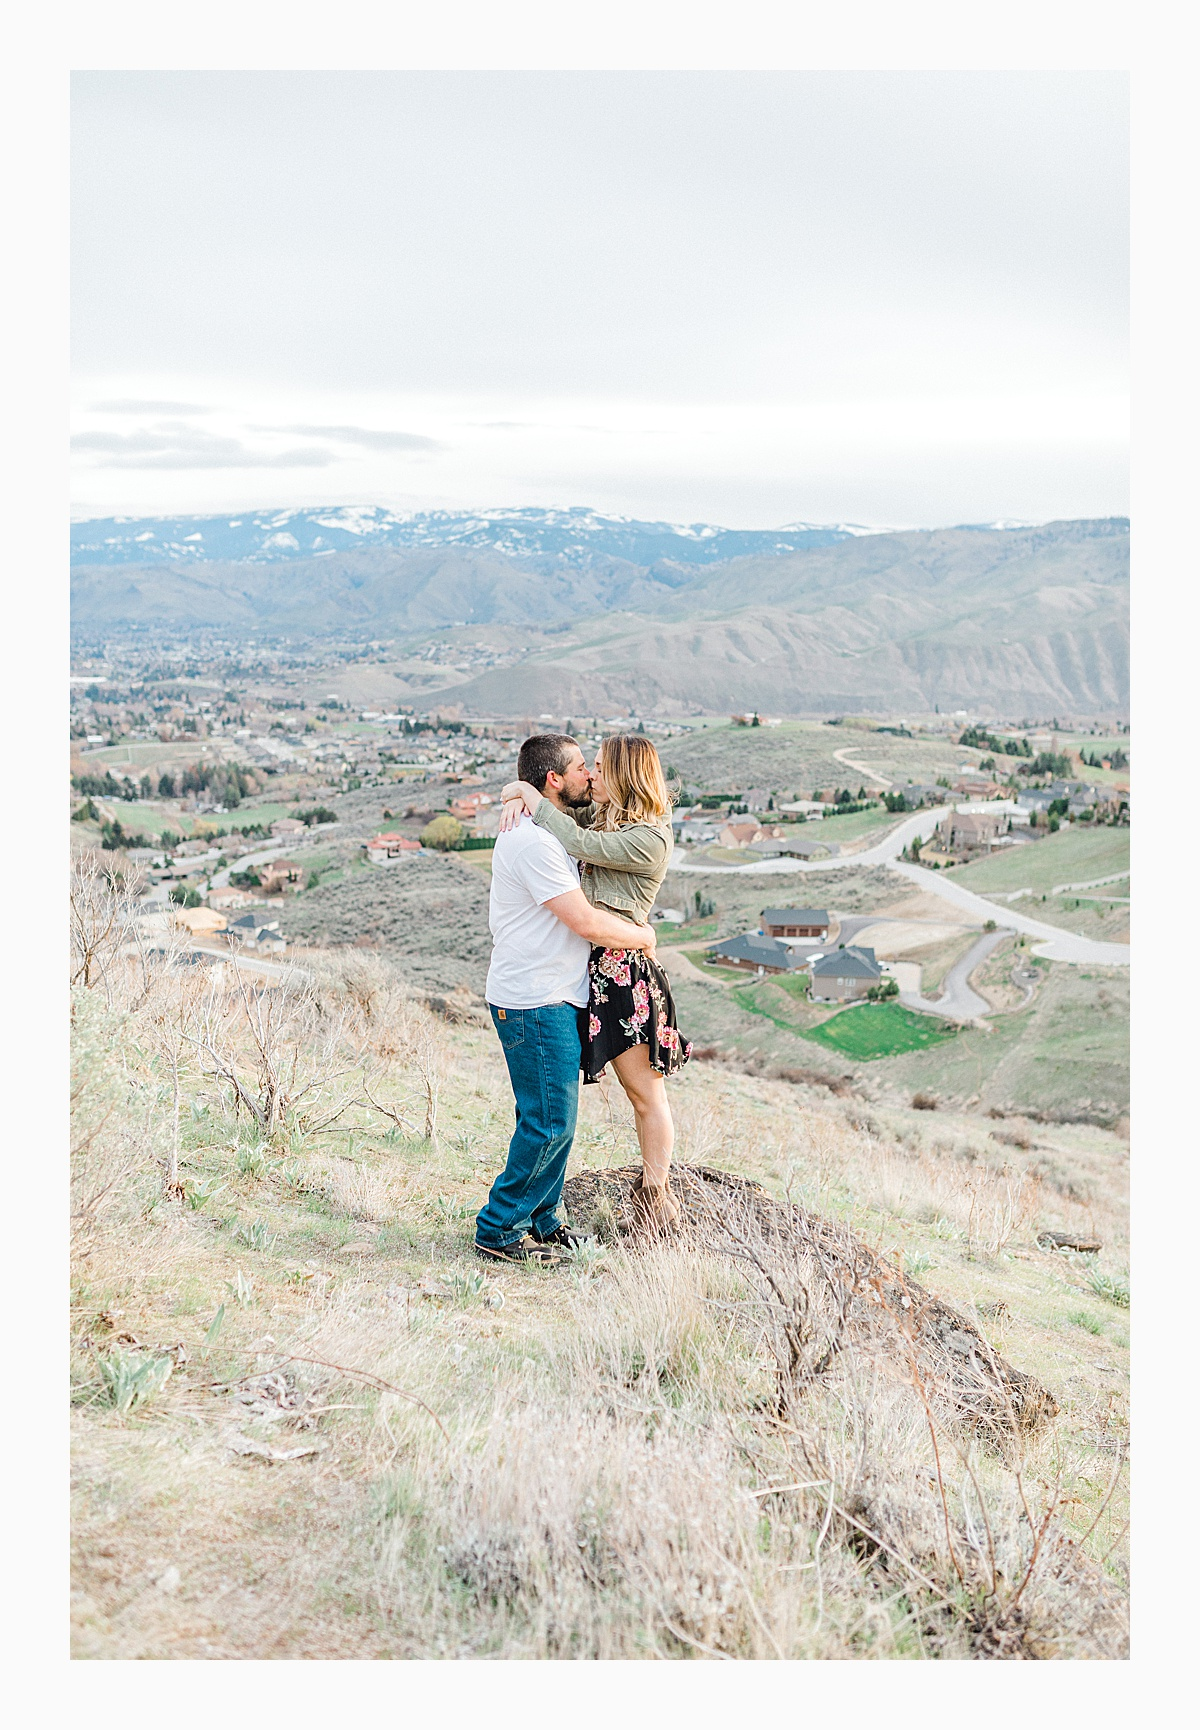 Pacific Northwest Engagement Session in the Sagebrush with Emma Rose Company who is a light and airy wedding photographer based in Seattle, Washington_0035.jpg